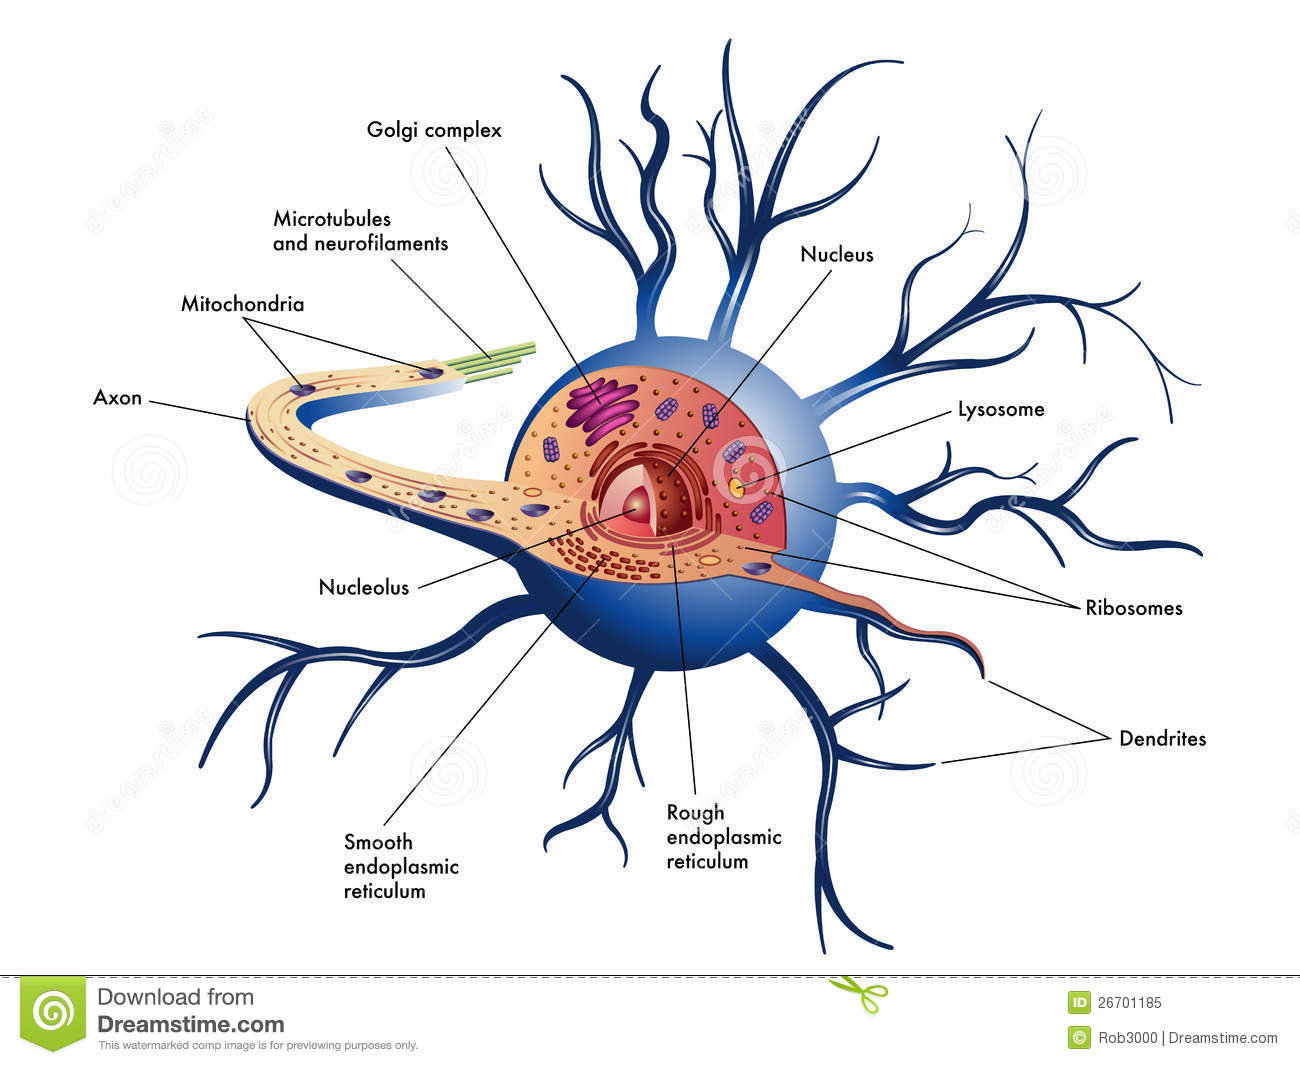 Nerve cells diagram labeled diagram nerve cells custom paper writing service mqtermpaperpagg ccuart Image collections